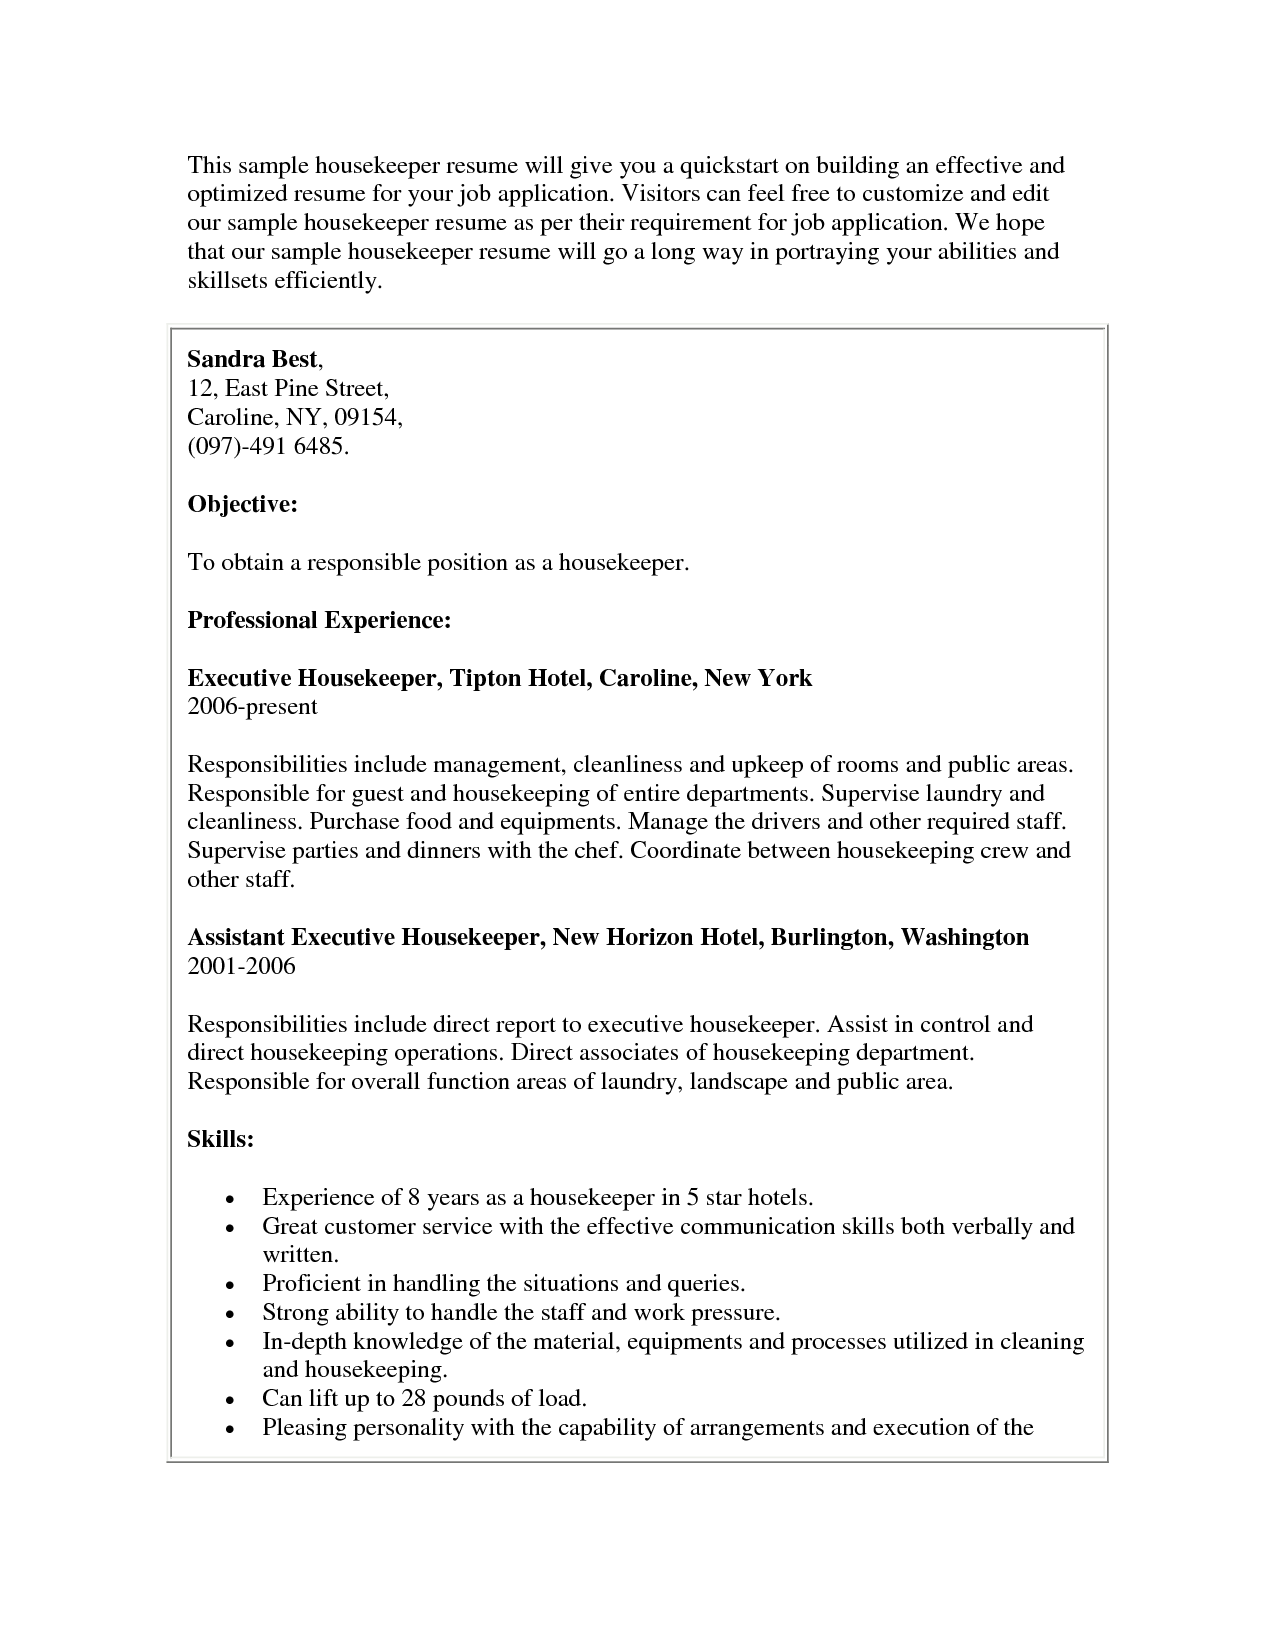 Housekeeping Resume Samples Resume Sample Housekeeping Samples For Job Description Effective